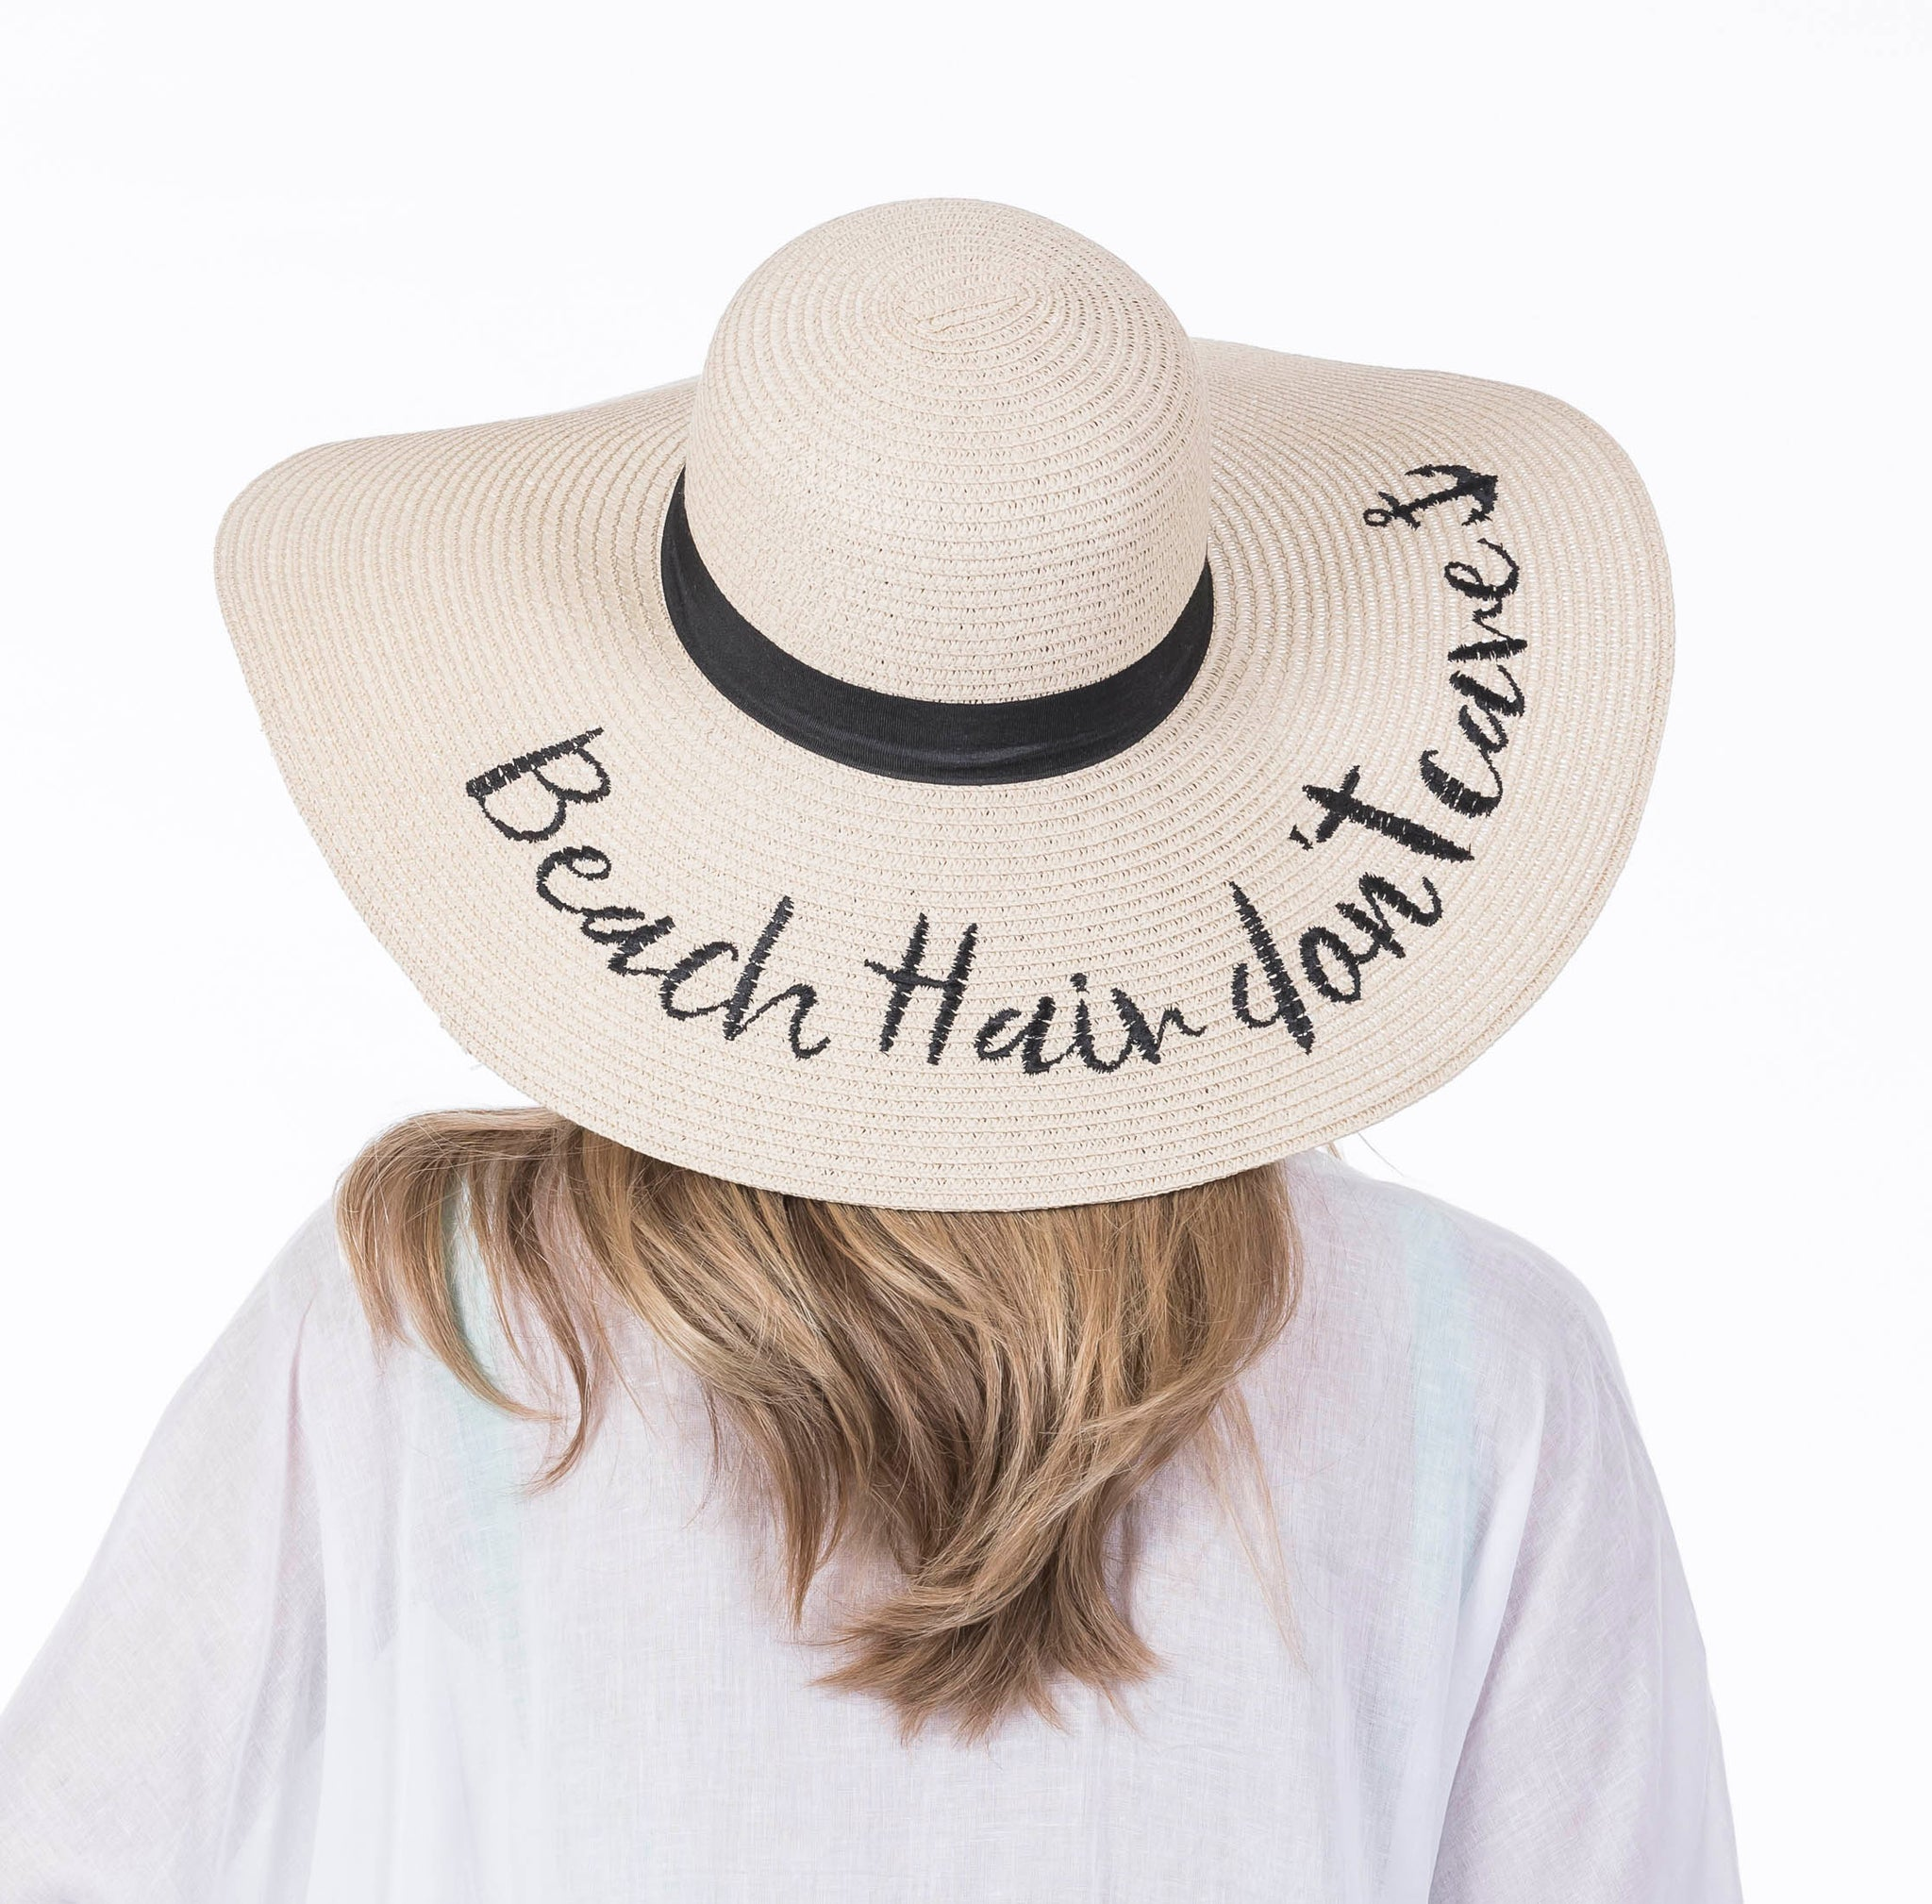 Katydid Beach Hair Don't Care Wholesale Sun Hats for Women